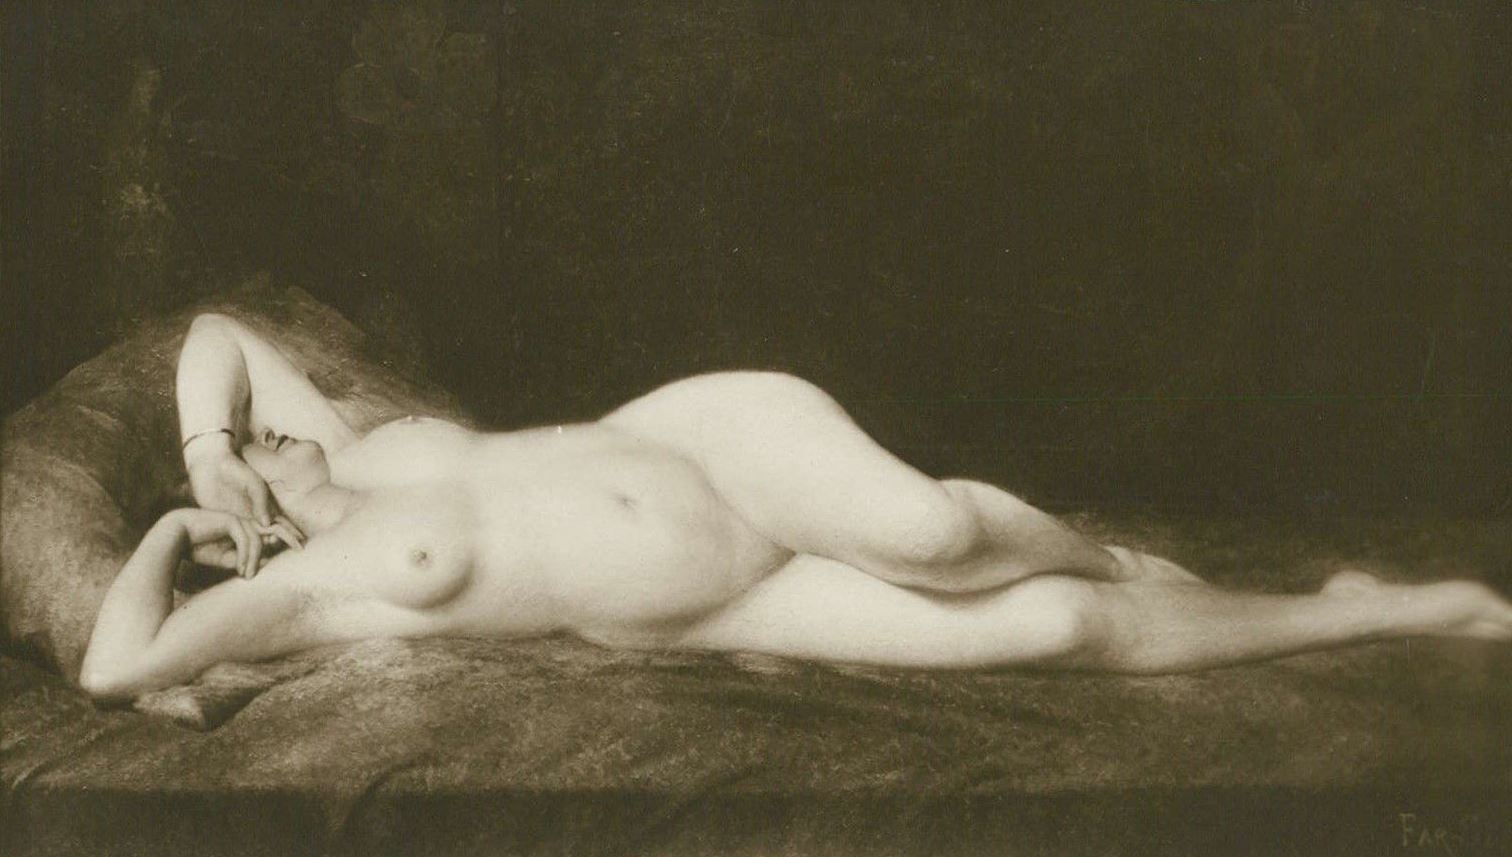 Alfred Noyer Studio. Woman in bed de Far Si. Erotic nude original 1910. Postcard Salon de Paris